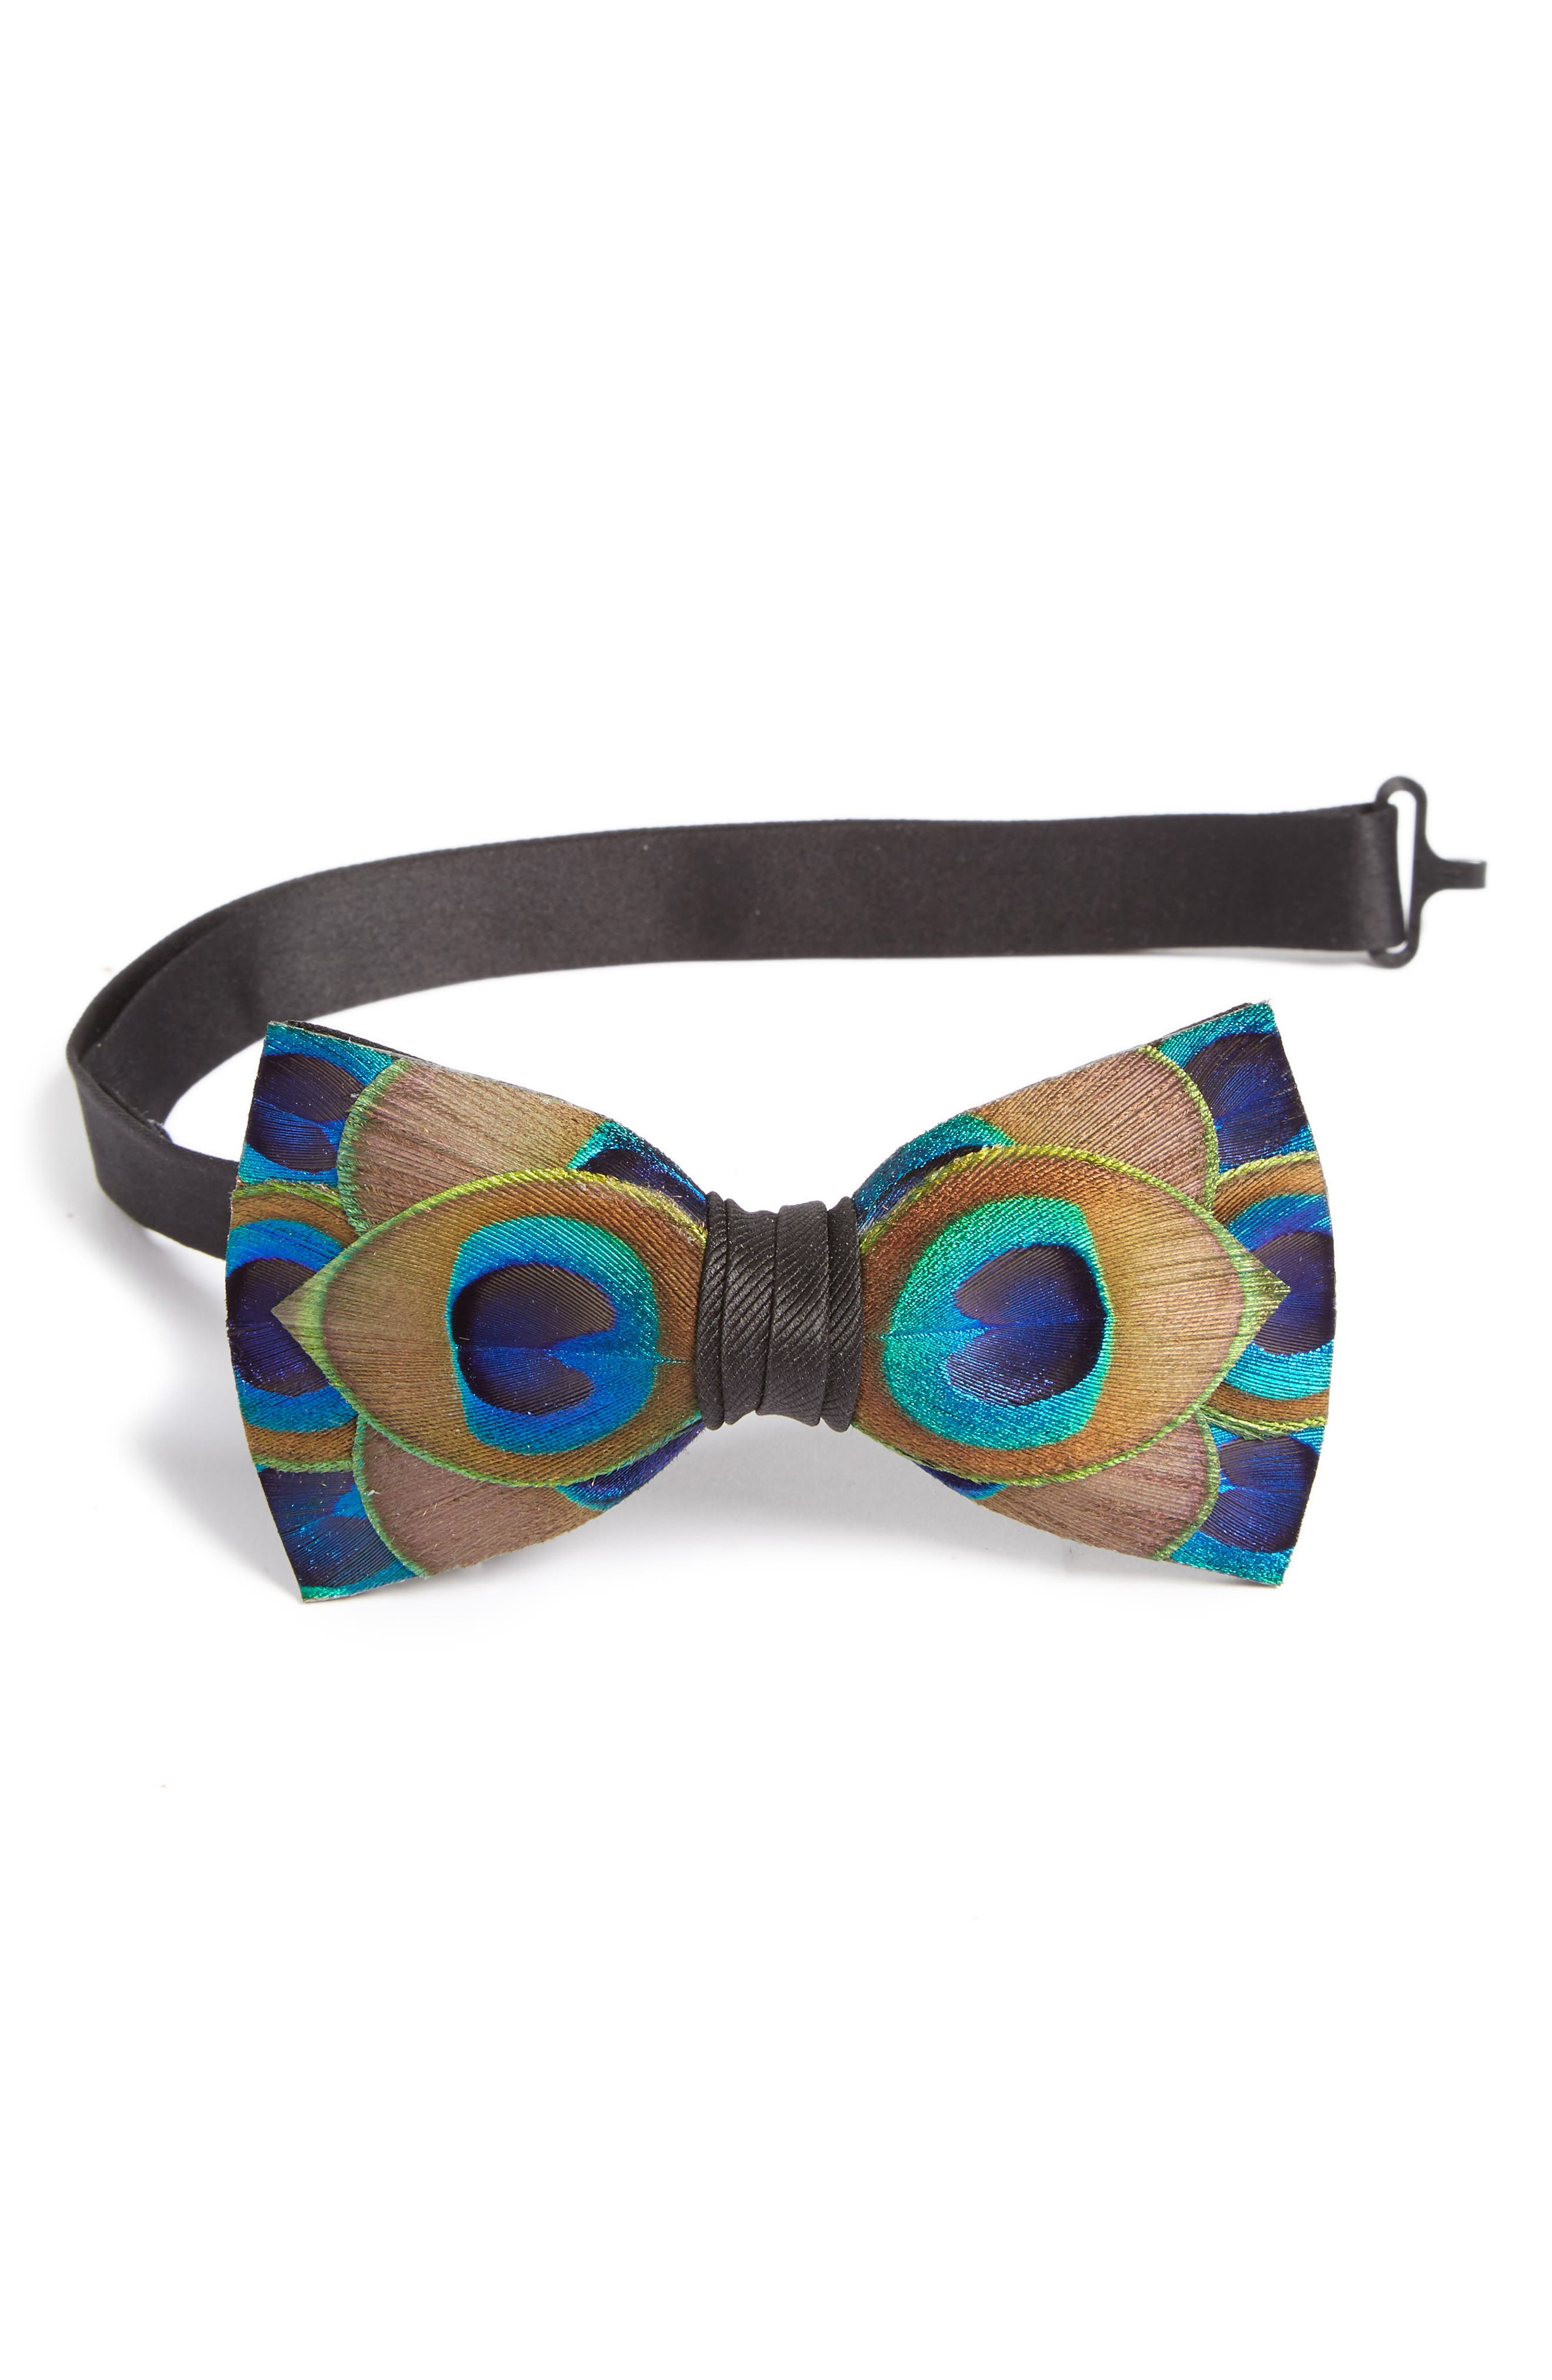 Hammock Feather Bow Tie,                             Main thumbnail 1, color,                             BLUE